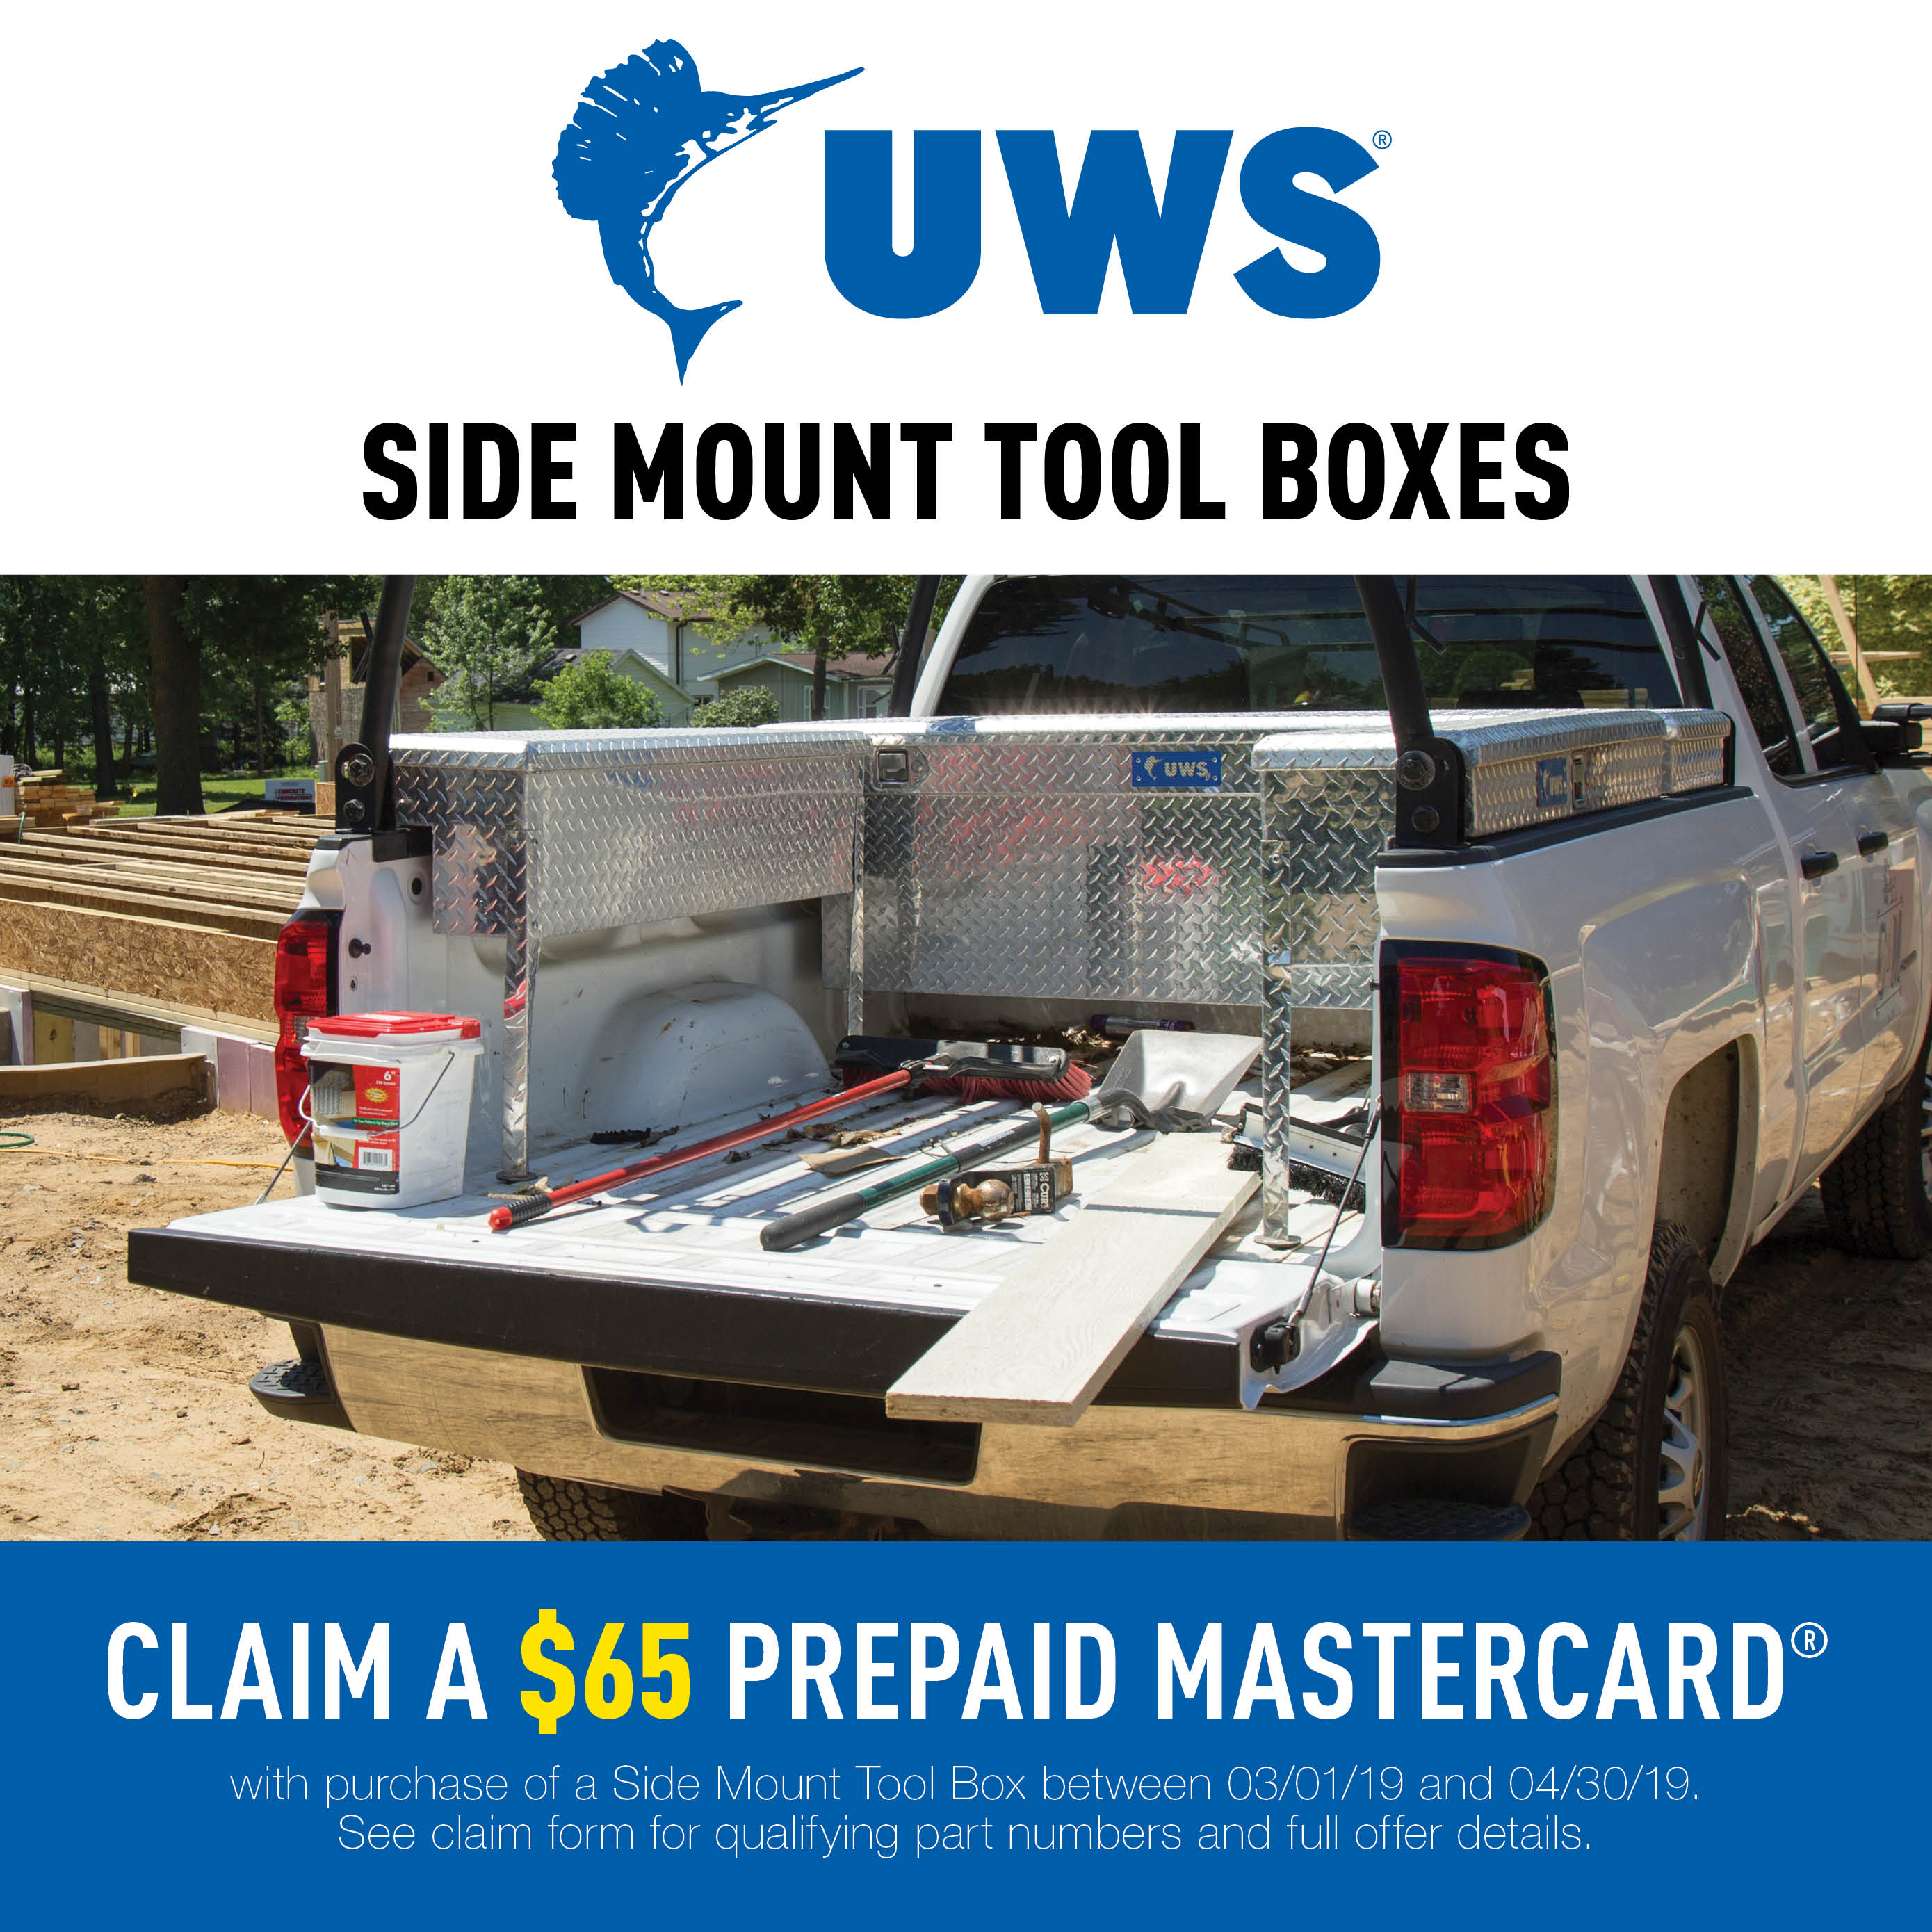 UWS Side Mount Tool Boxes Promotion 2019